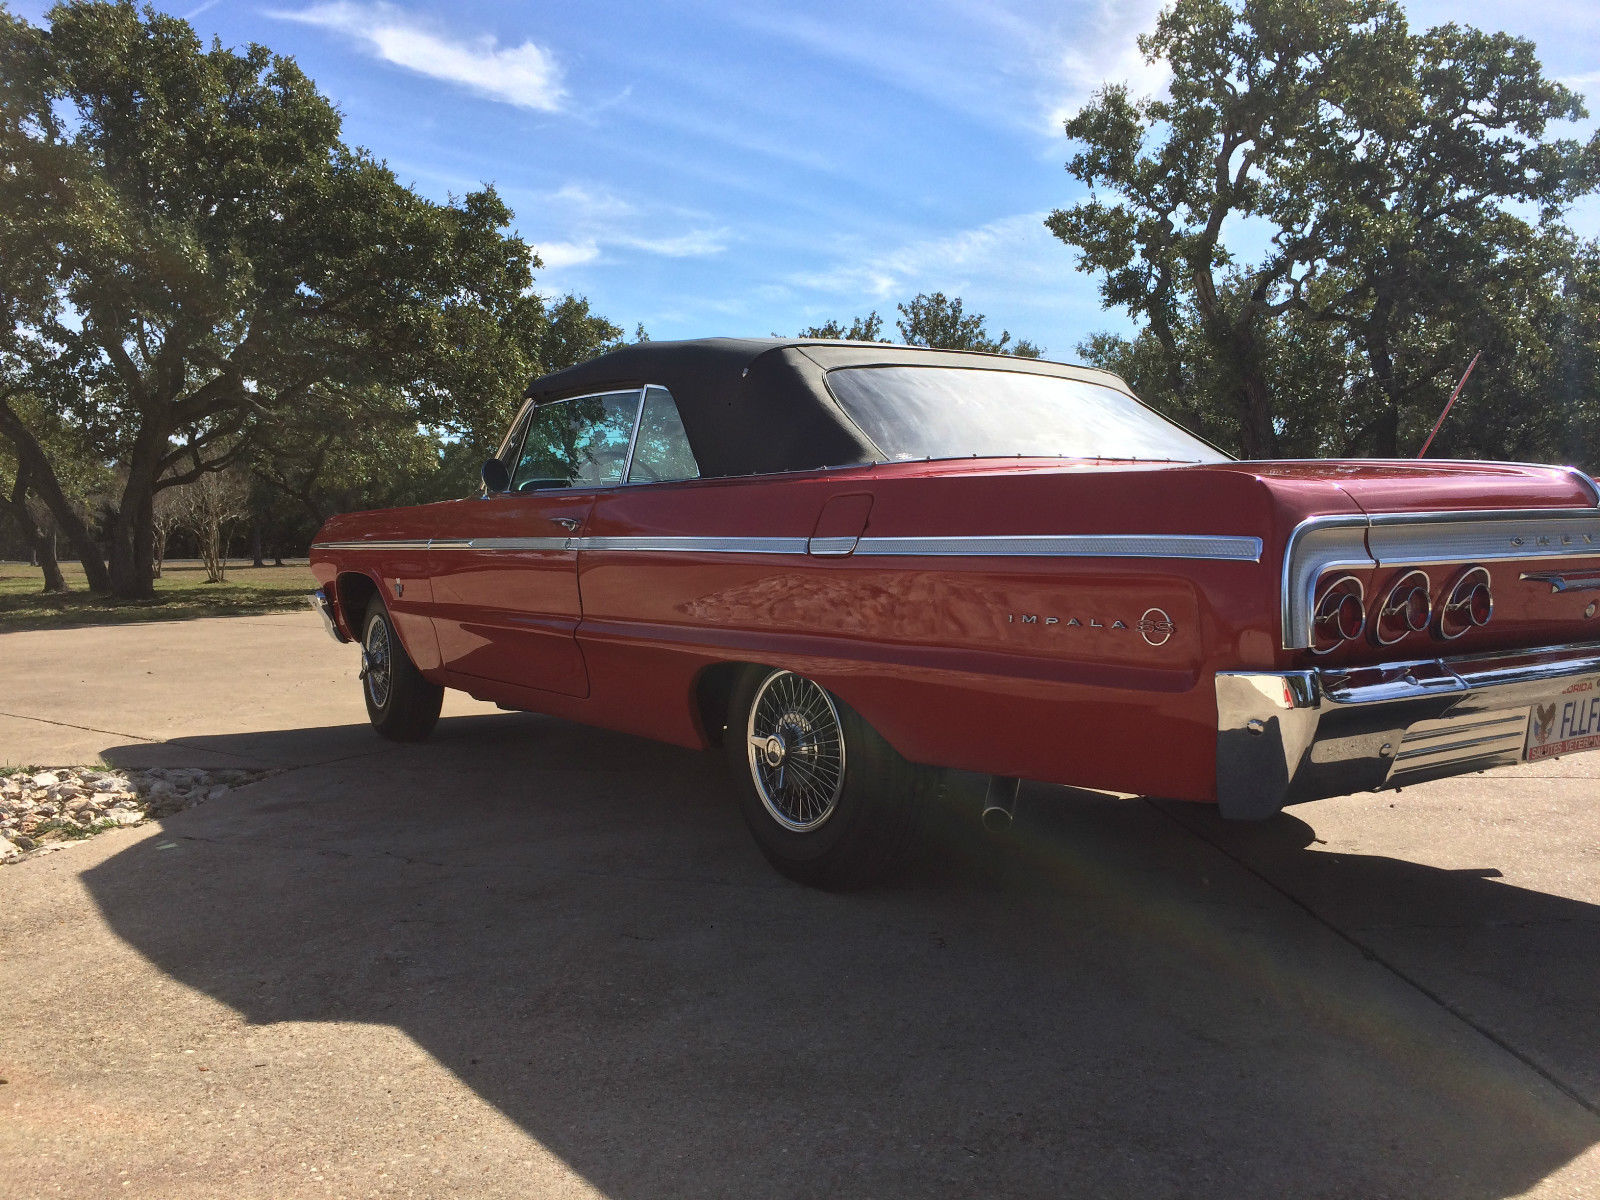 1964 impala ss convertible 409 red w new black power top classic chevrolet impala 1964 for sale. Black Bedroom Furniture Sets. Home Design Ideas